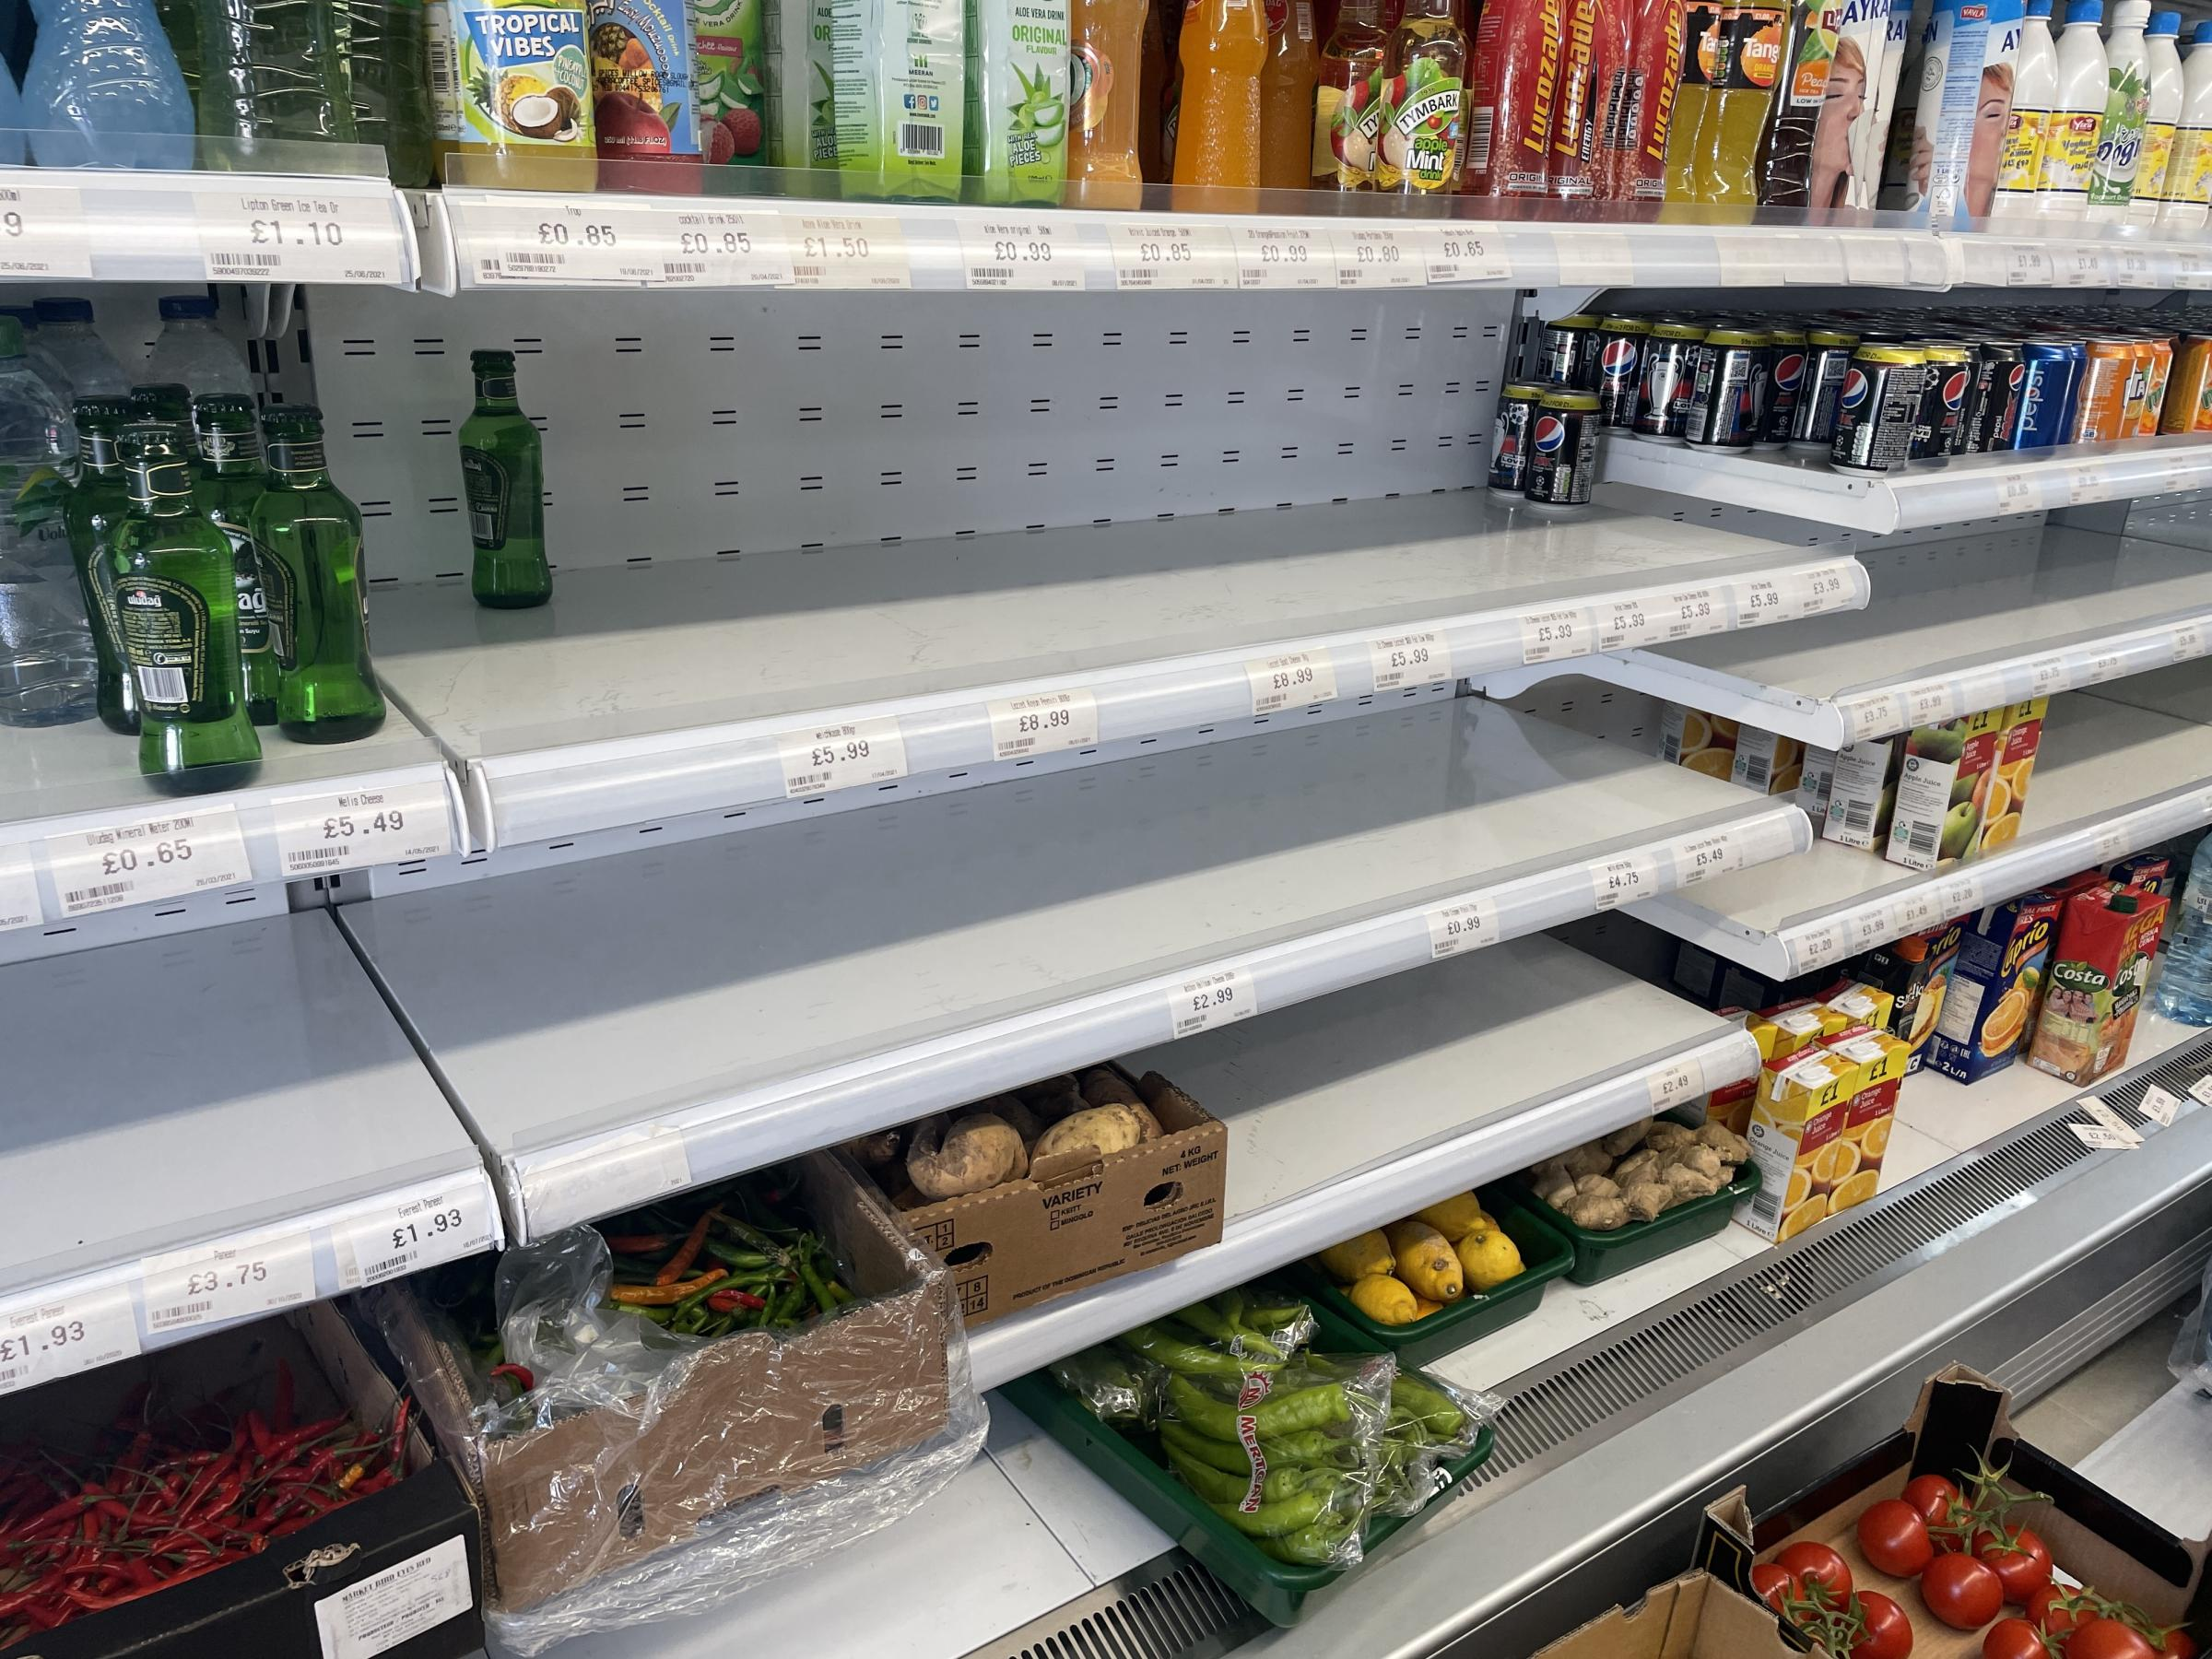 oxfordmail.co.uk - Viraj Bhatia - Empty food shelves in Oxford as 'pingdemic' affects supply chains